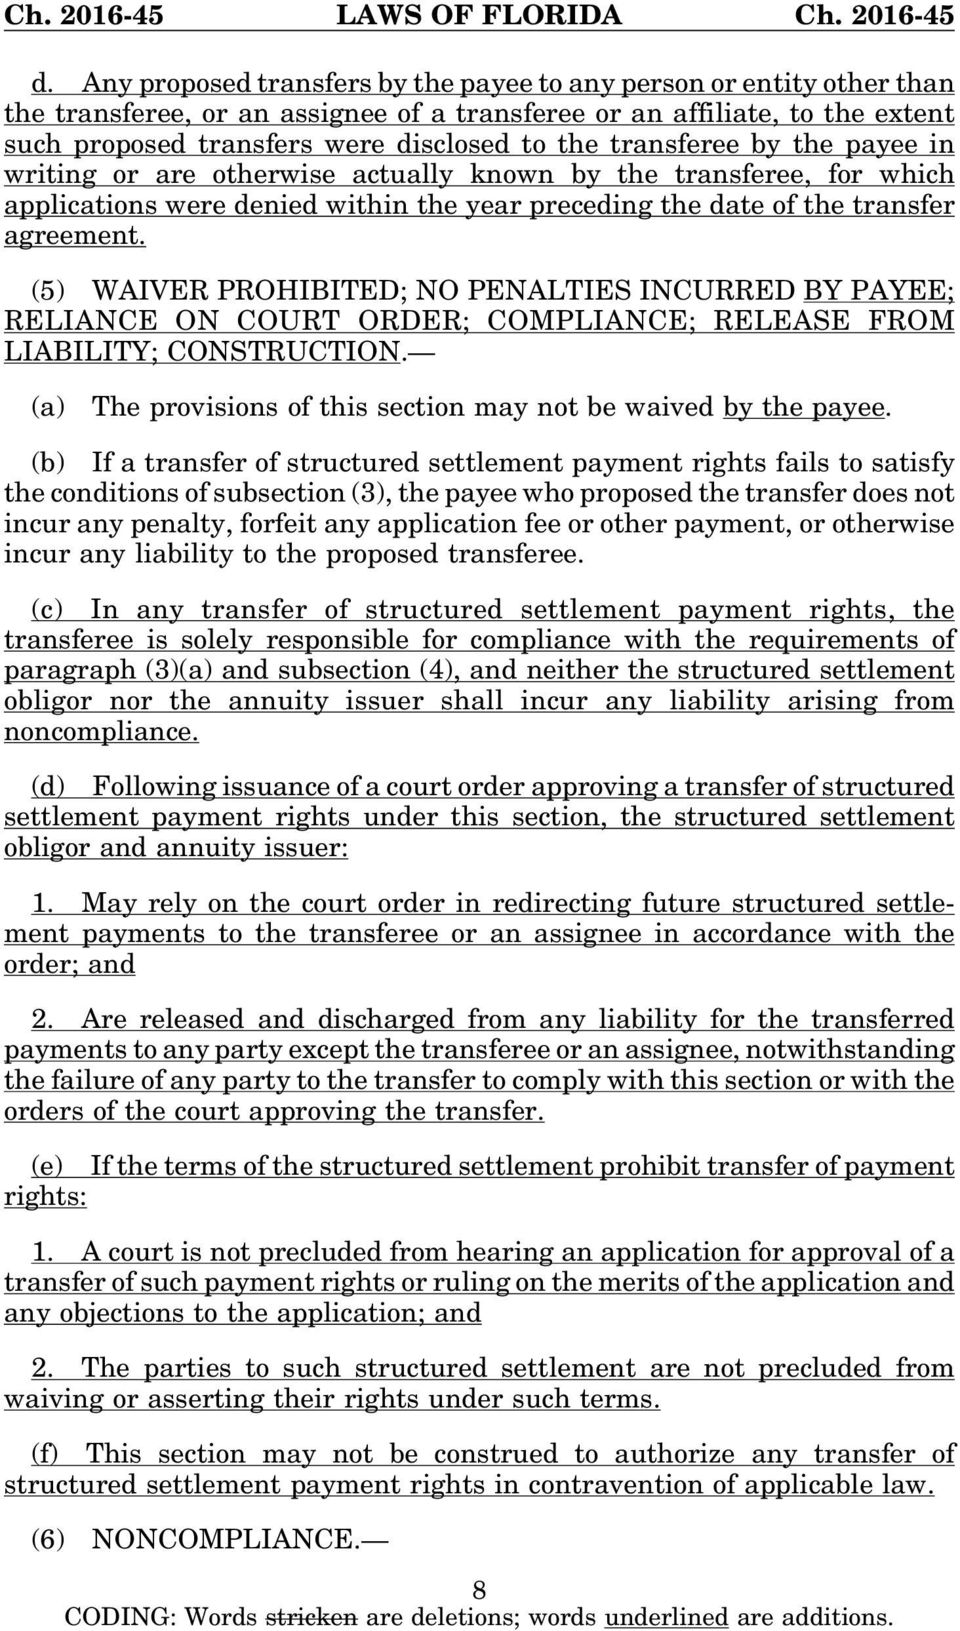 (5) WAIVER PROHIBITED; NO PENALTIES INCURRED BY PAYEE; RELIANCE ON COURT ORDER; COMPLIANCE; RELEASE FROM LIABILITY; CONSTRUCTION. (a) The provisions of this section may not be waived by the payee.